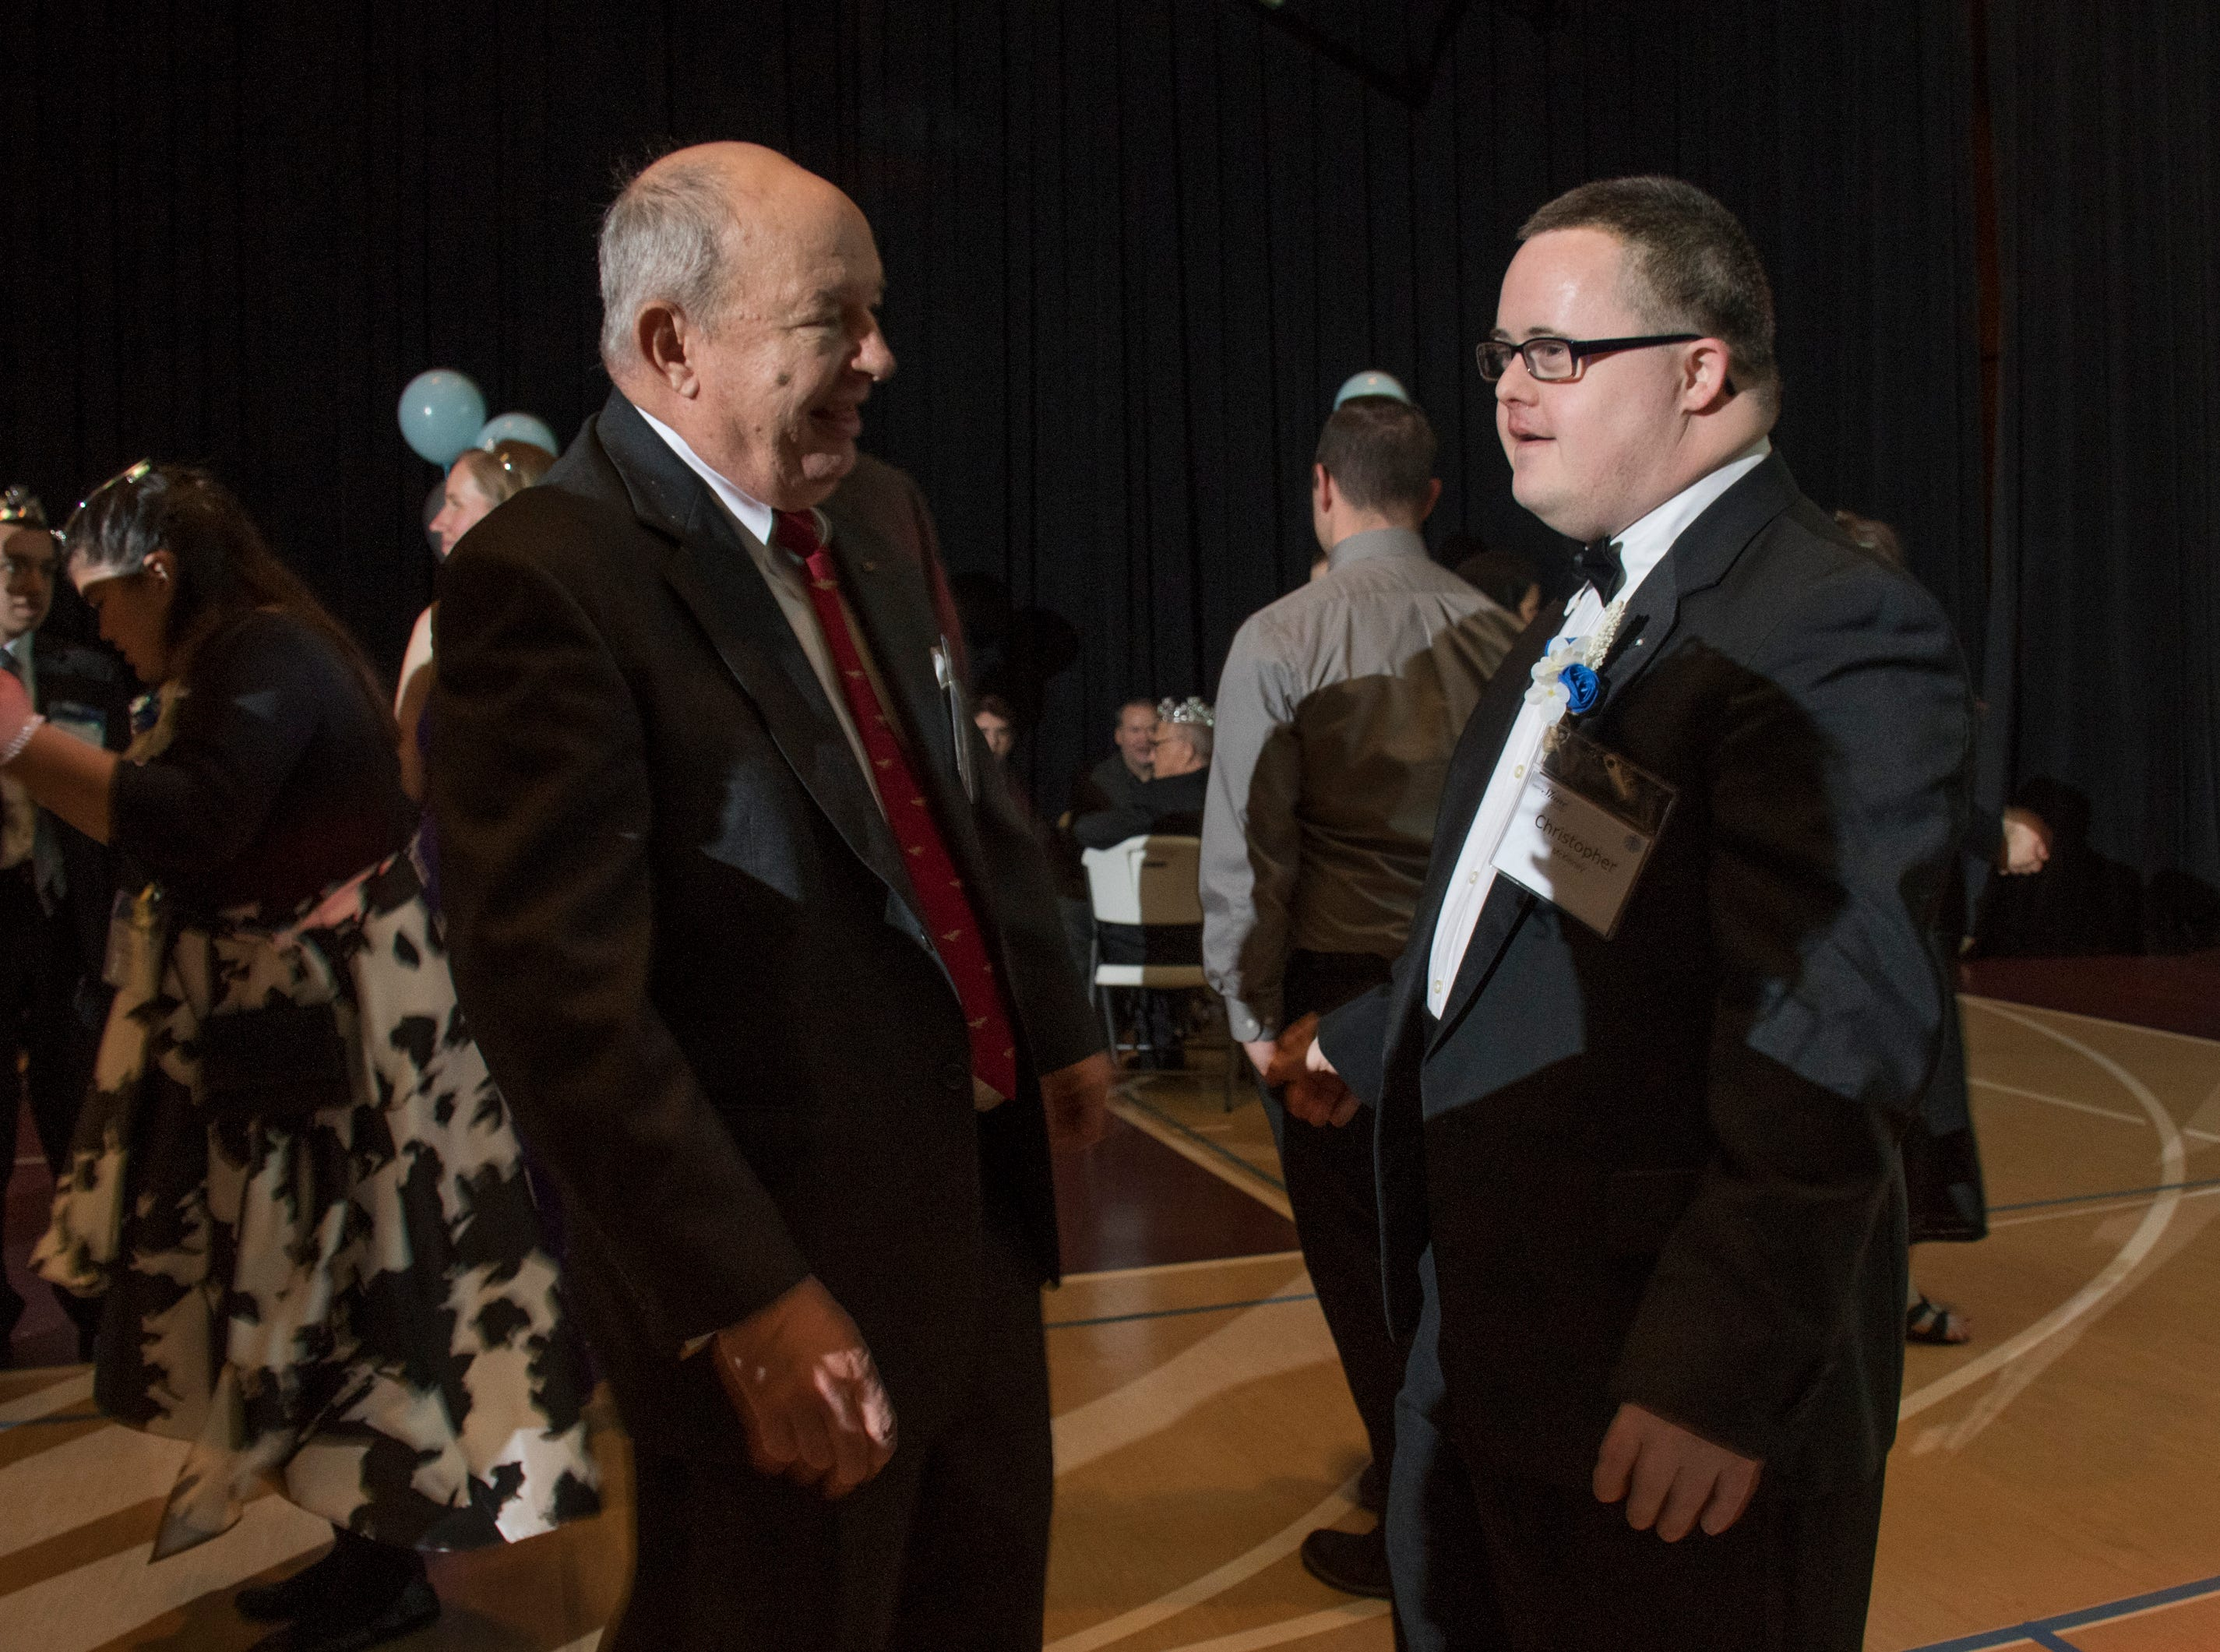 Bill McCormick and Christopher McKinney hit the dance floor during the Night to Shine prom for people with special needs sponsored by the Tim Tebow Foundation at Perdido Bay United Methodist Church in Pensacola on Friday, February 8, 2019.